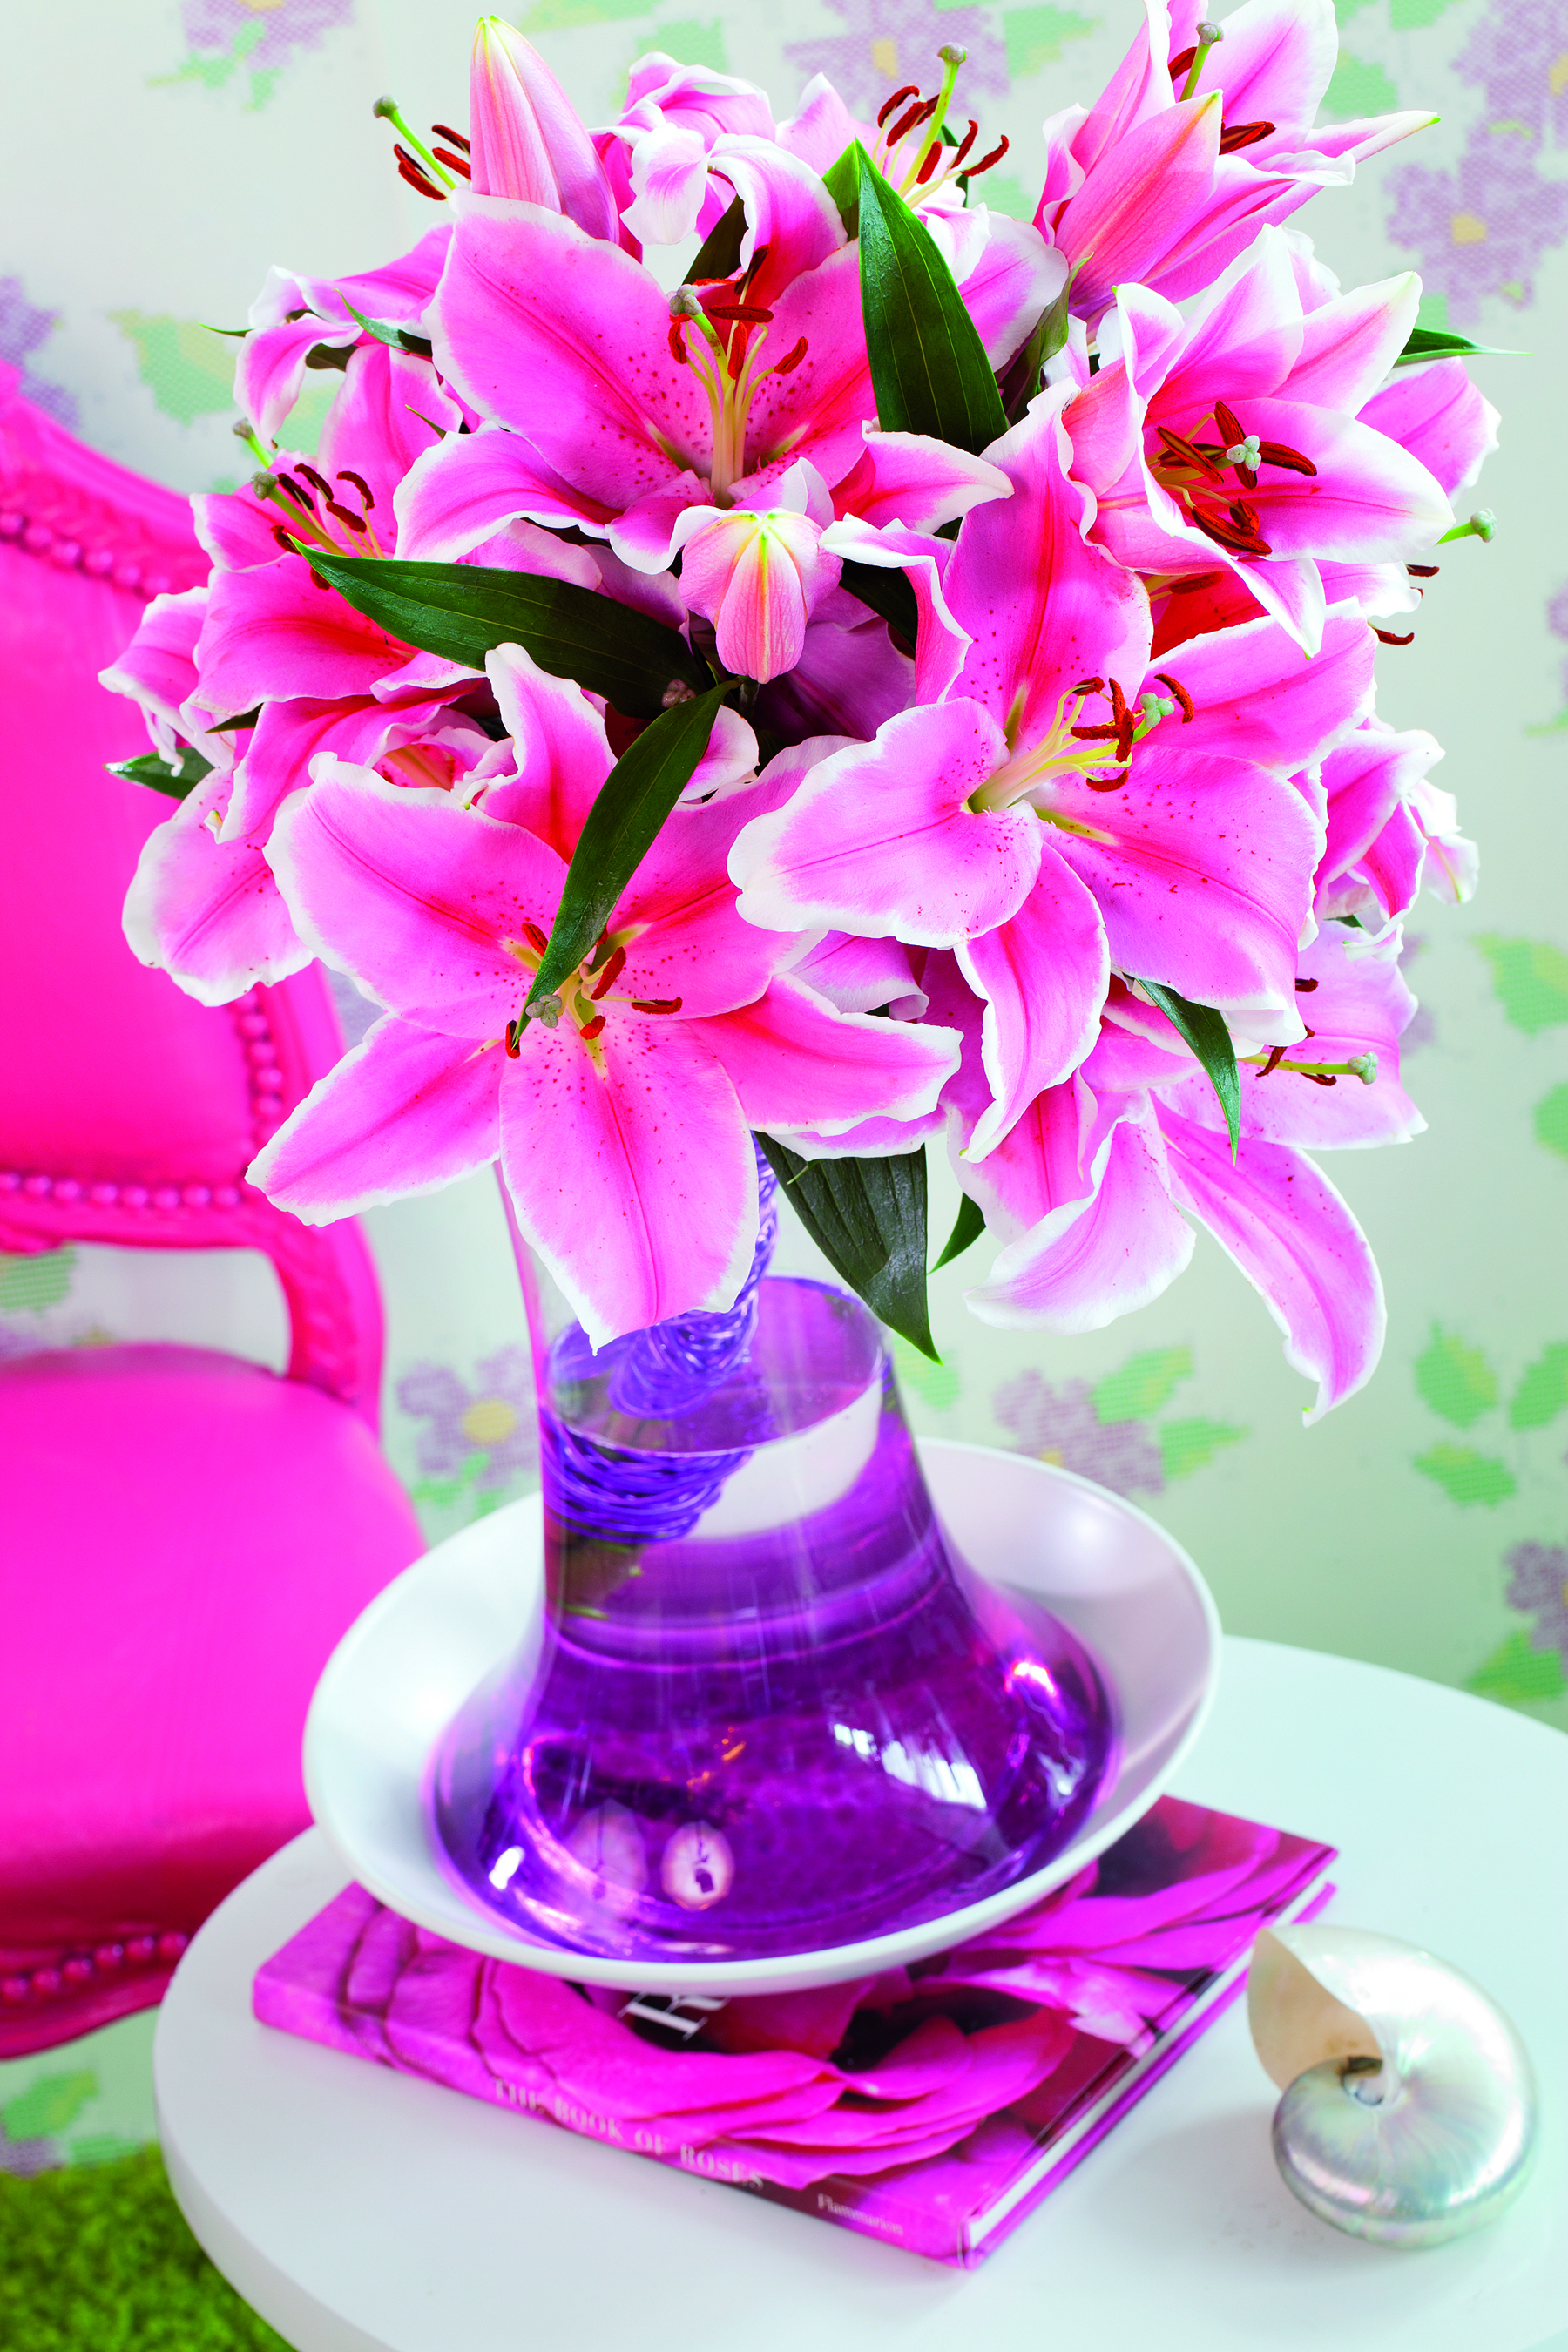 Give The Gift Of Lilies This Spring